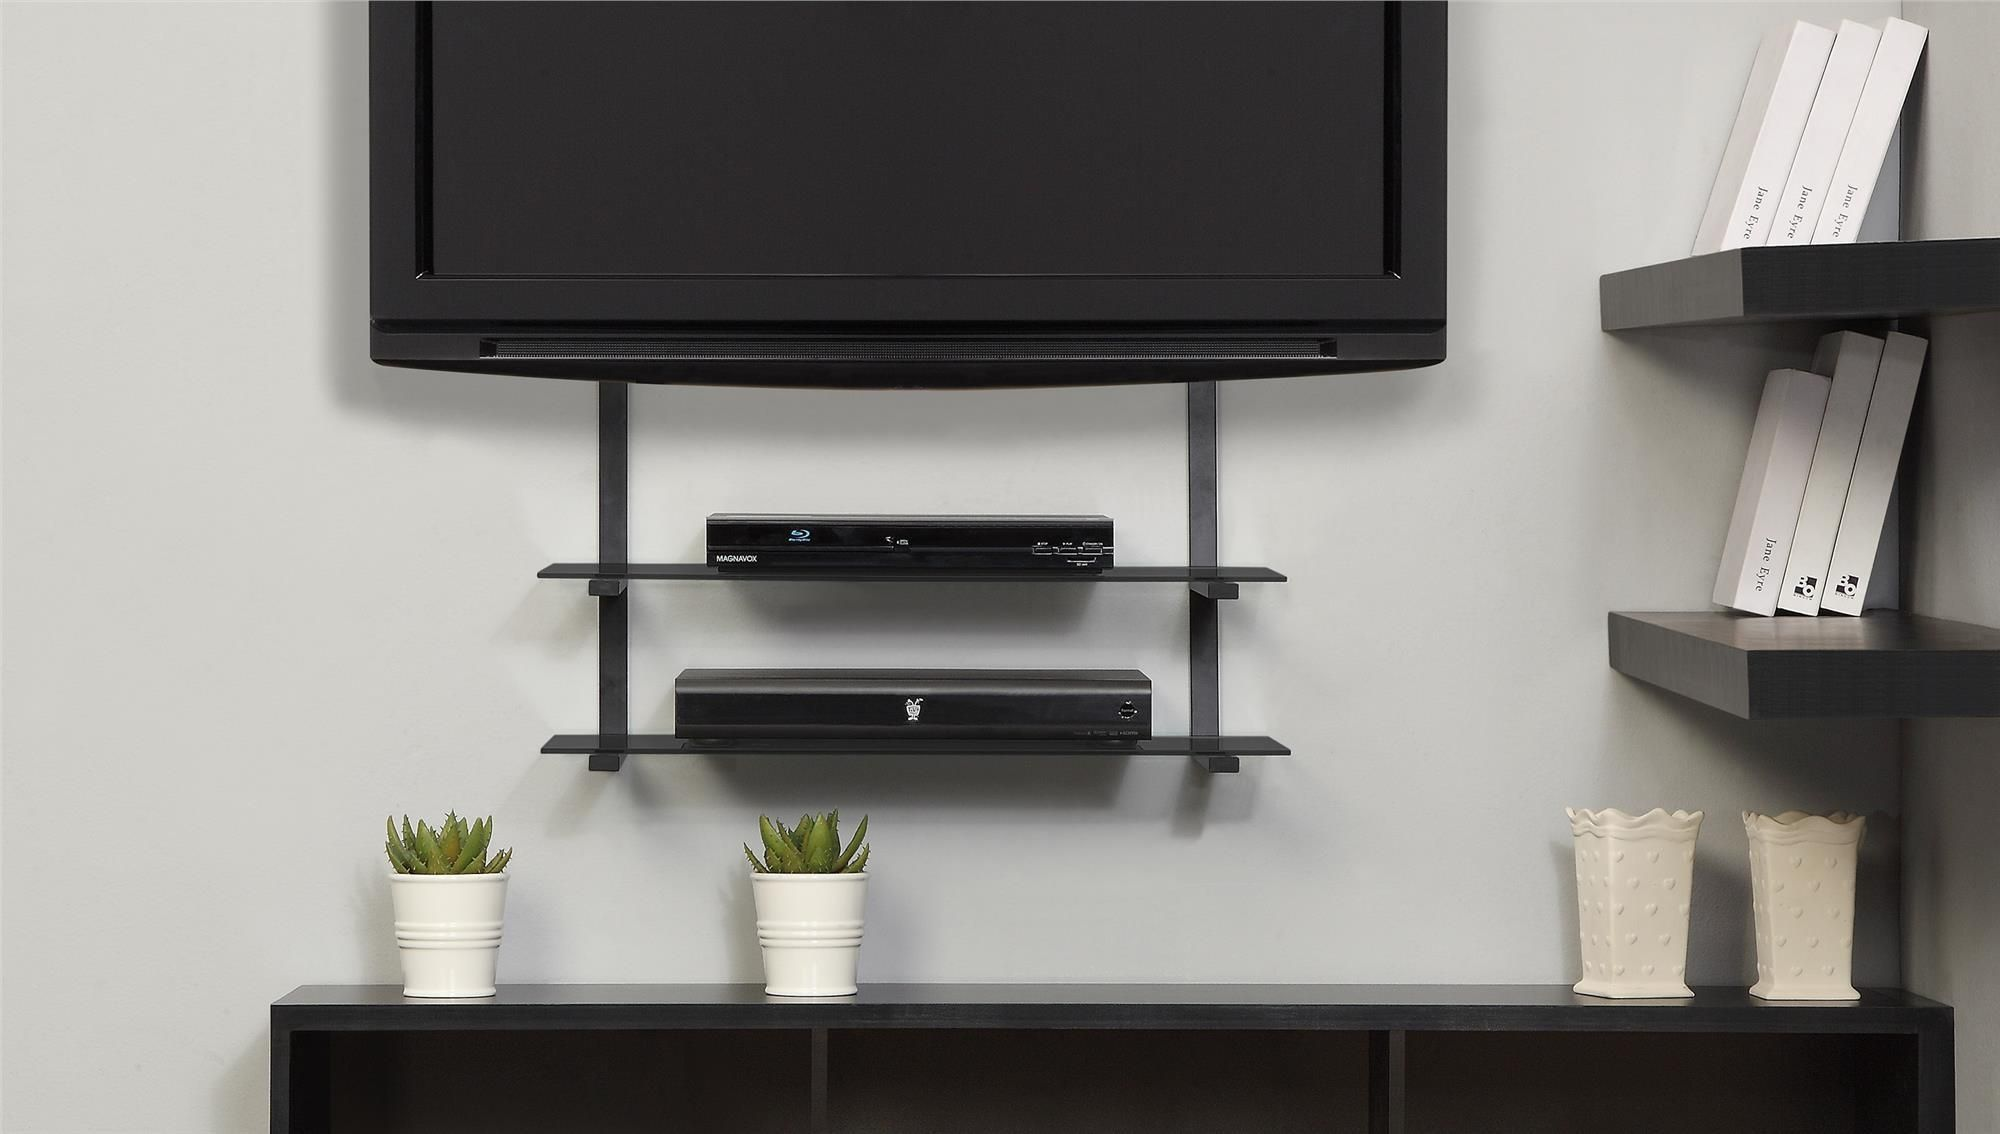 Tv Swivel Wall Mount With Shelf For Cable Box Mount Options